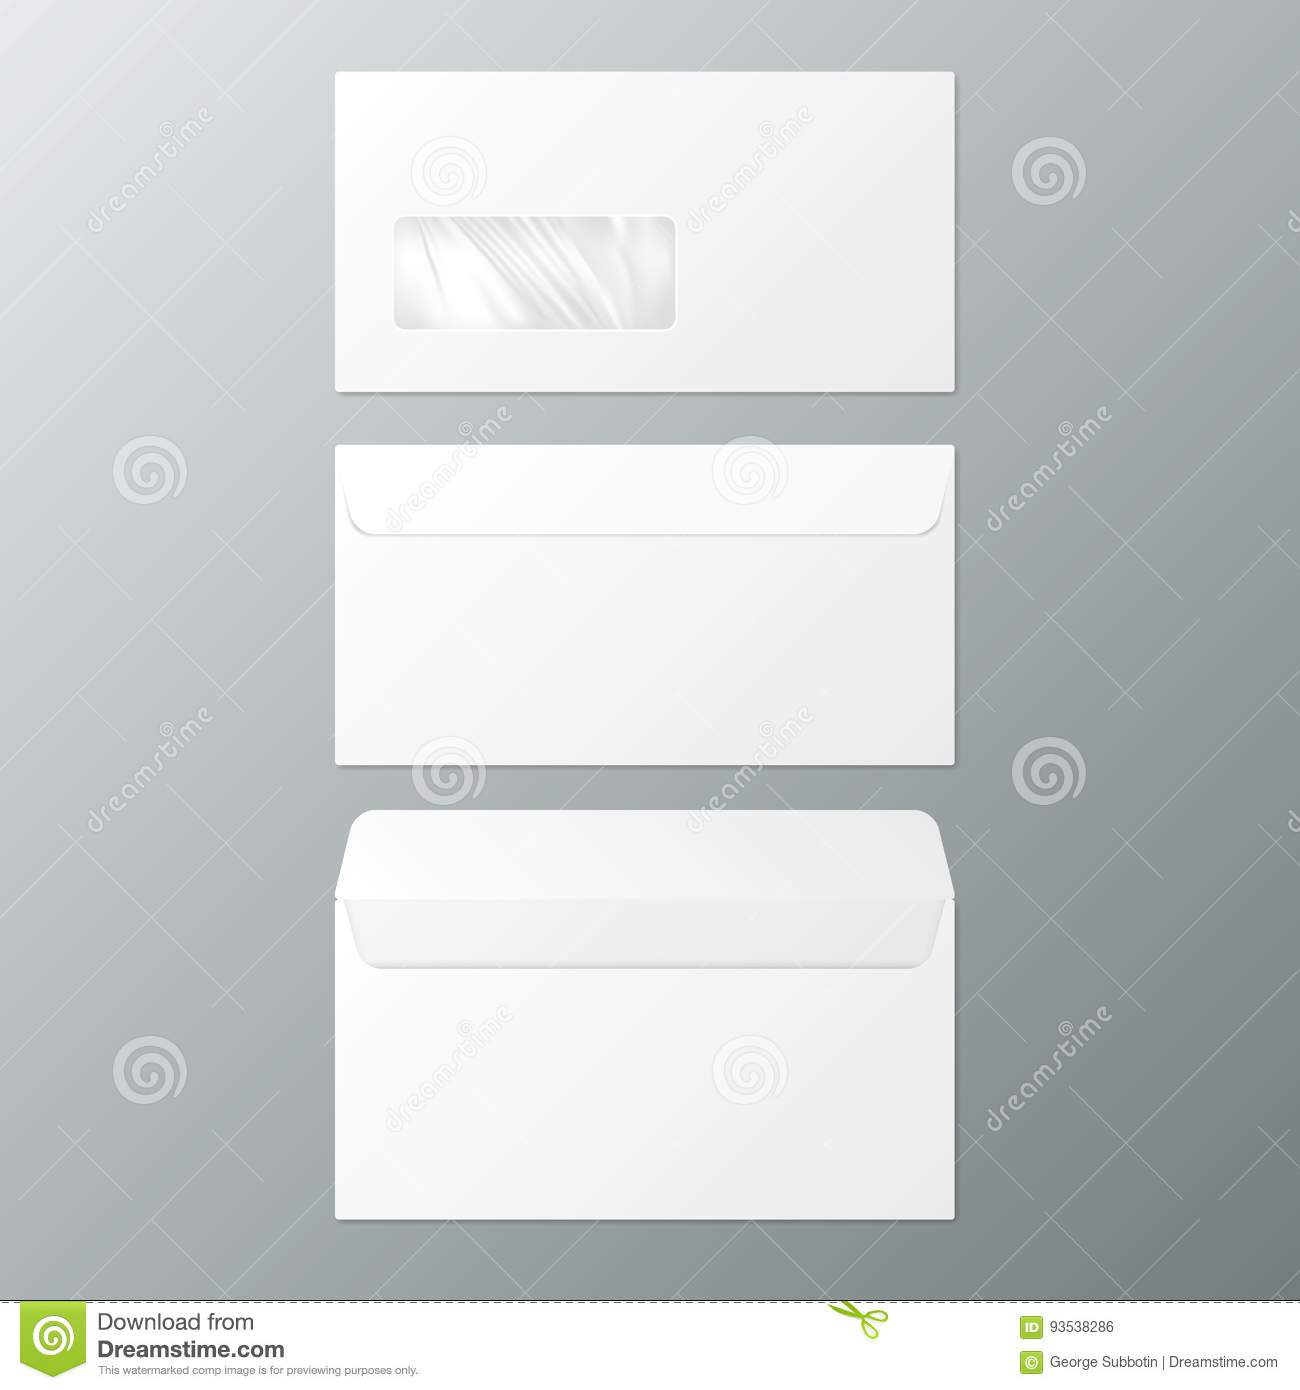 DL Envelopes. Front And Back View. Open And Close